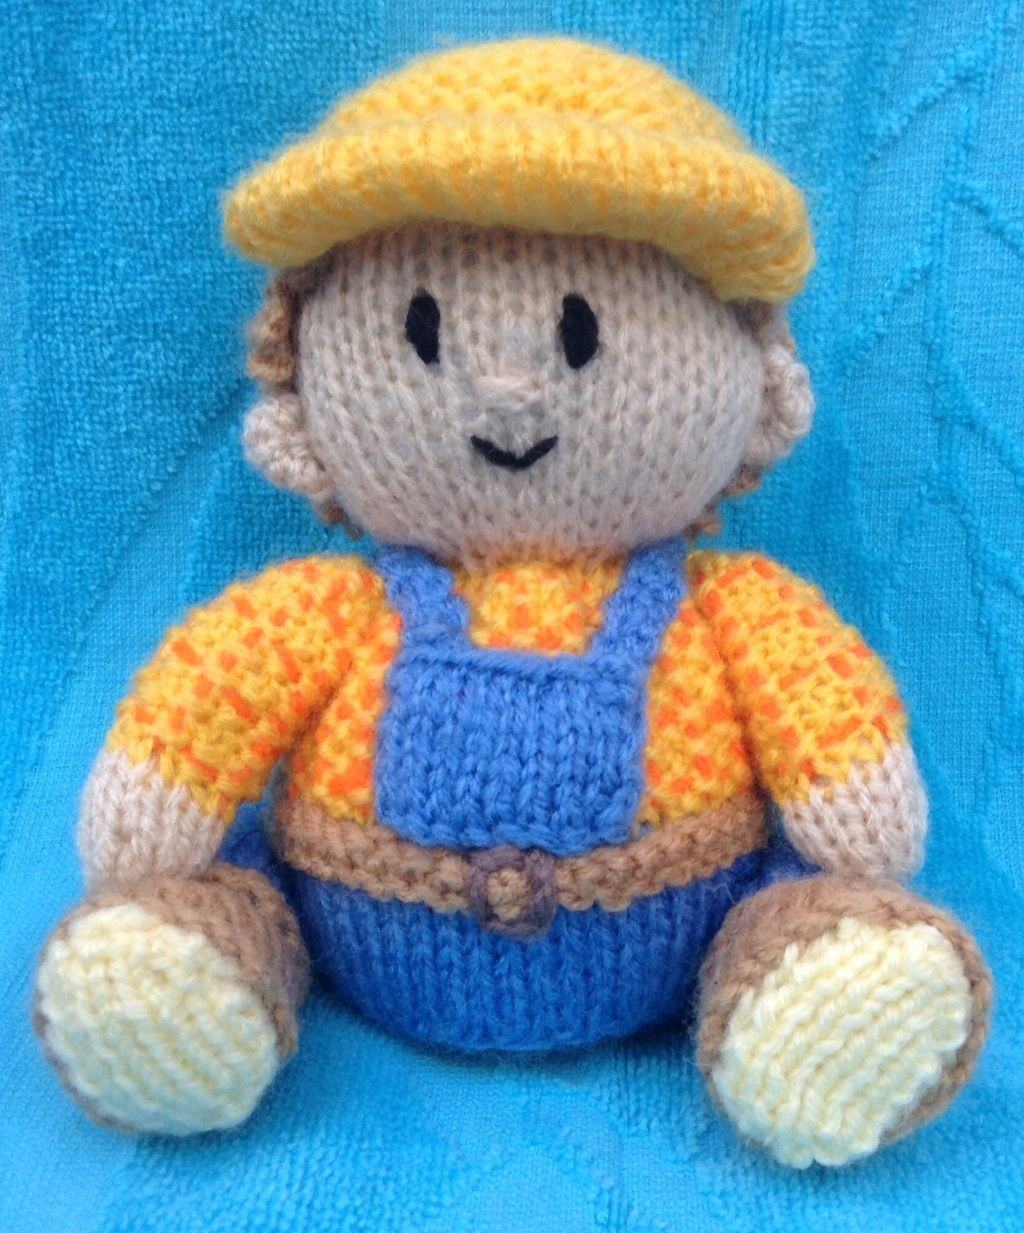 Bob the Builder chocolate orange cover or 15 cms toy ...